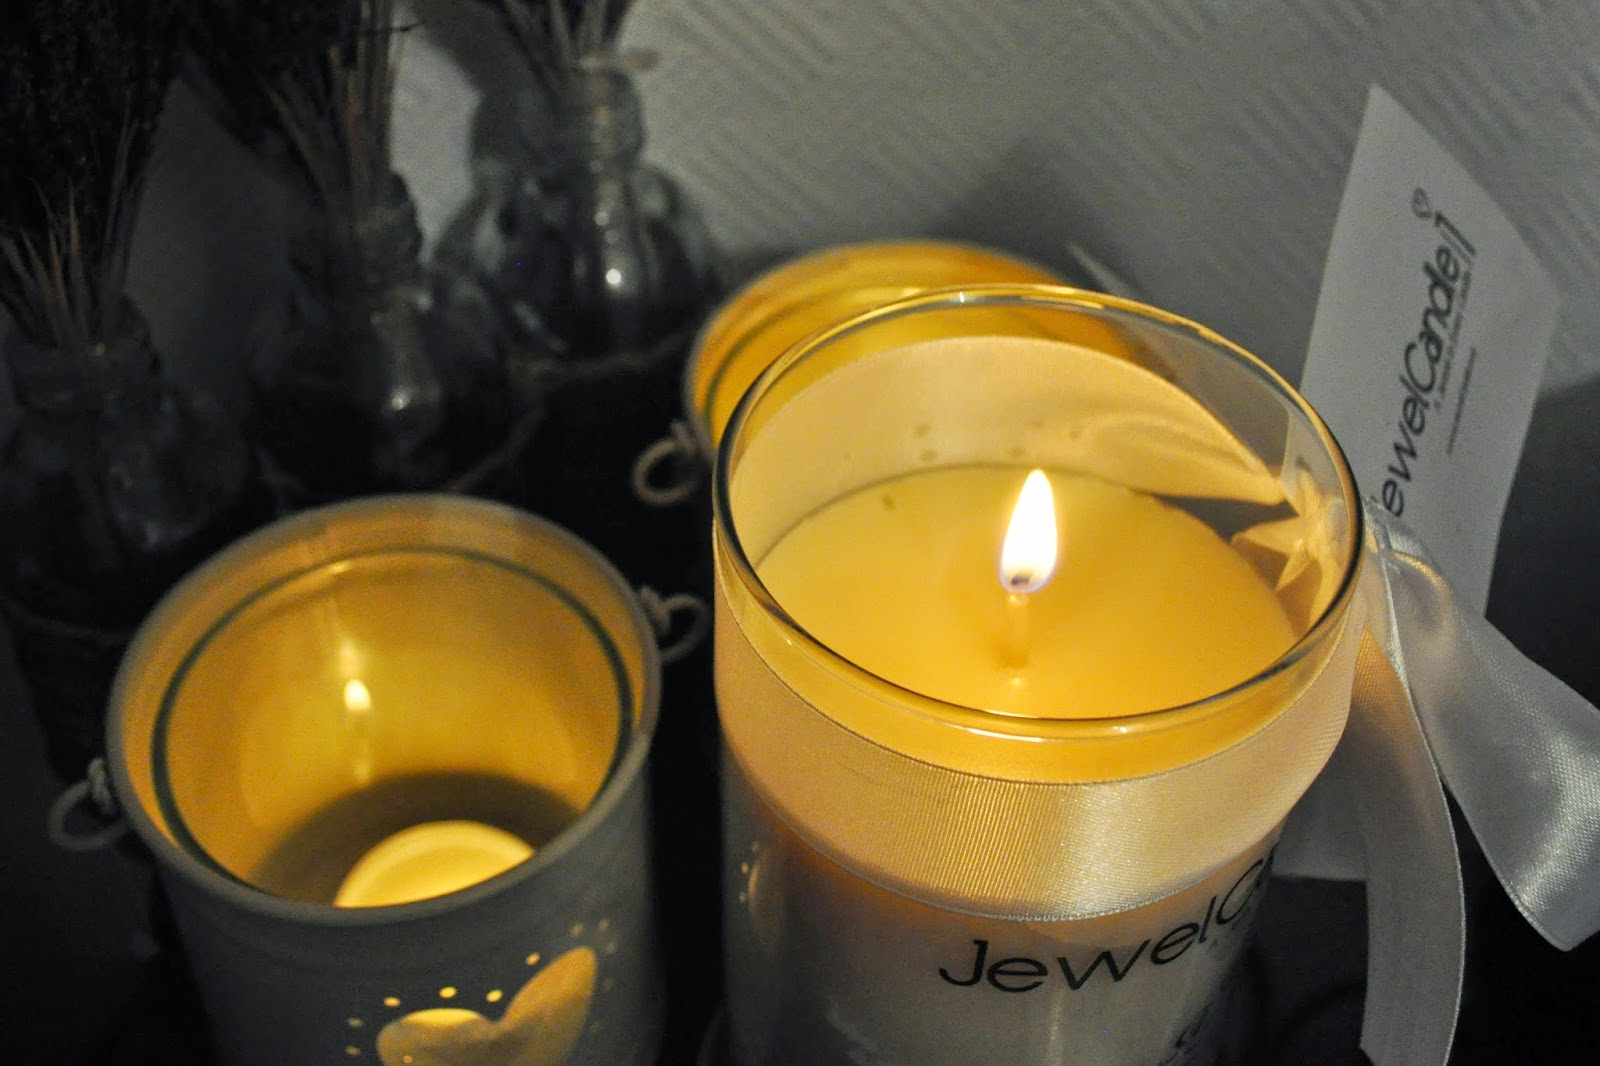 francescassandra uk fashion beauty and lifestyle blog review jewel candle. Black Bedroom Furniture Sets. Home Design Ideas